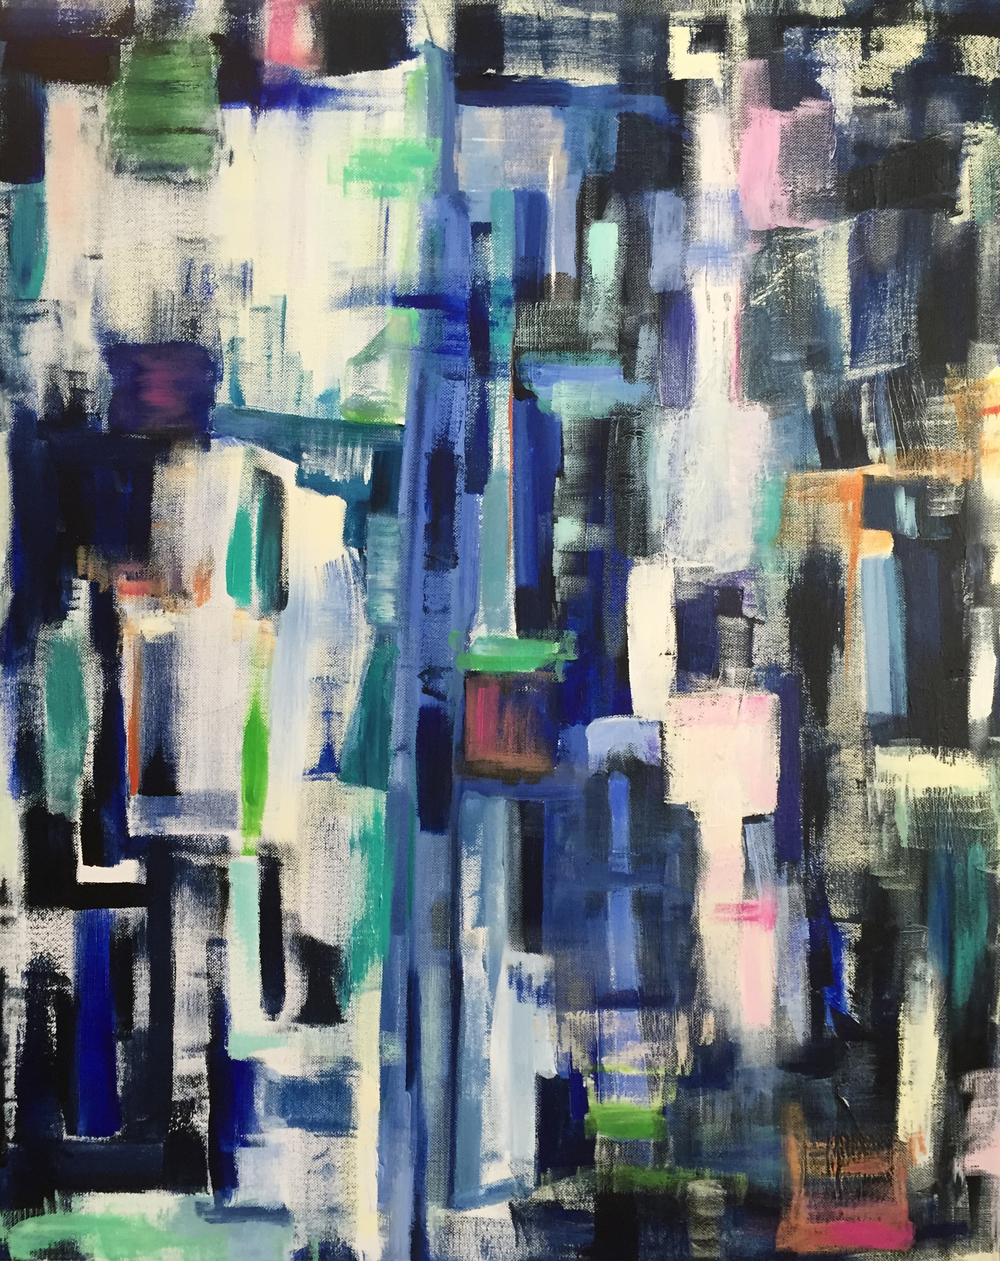 city blues from above - 24x30, acrylic on canvas